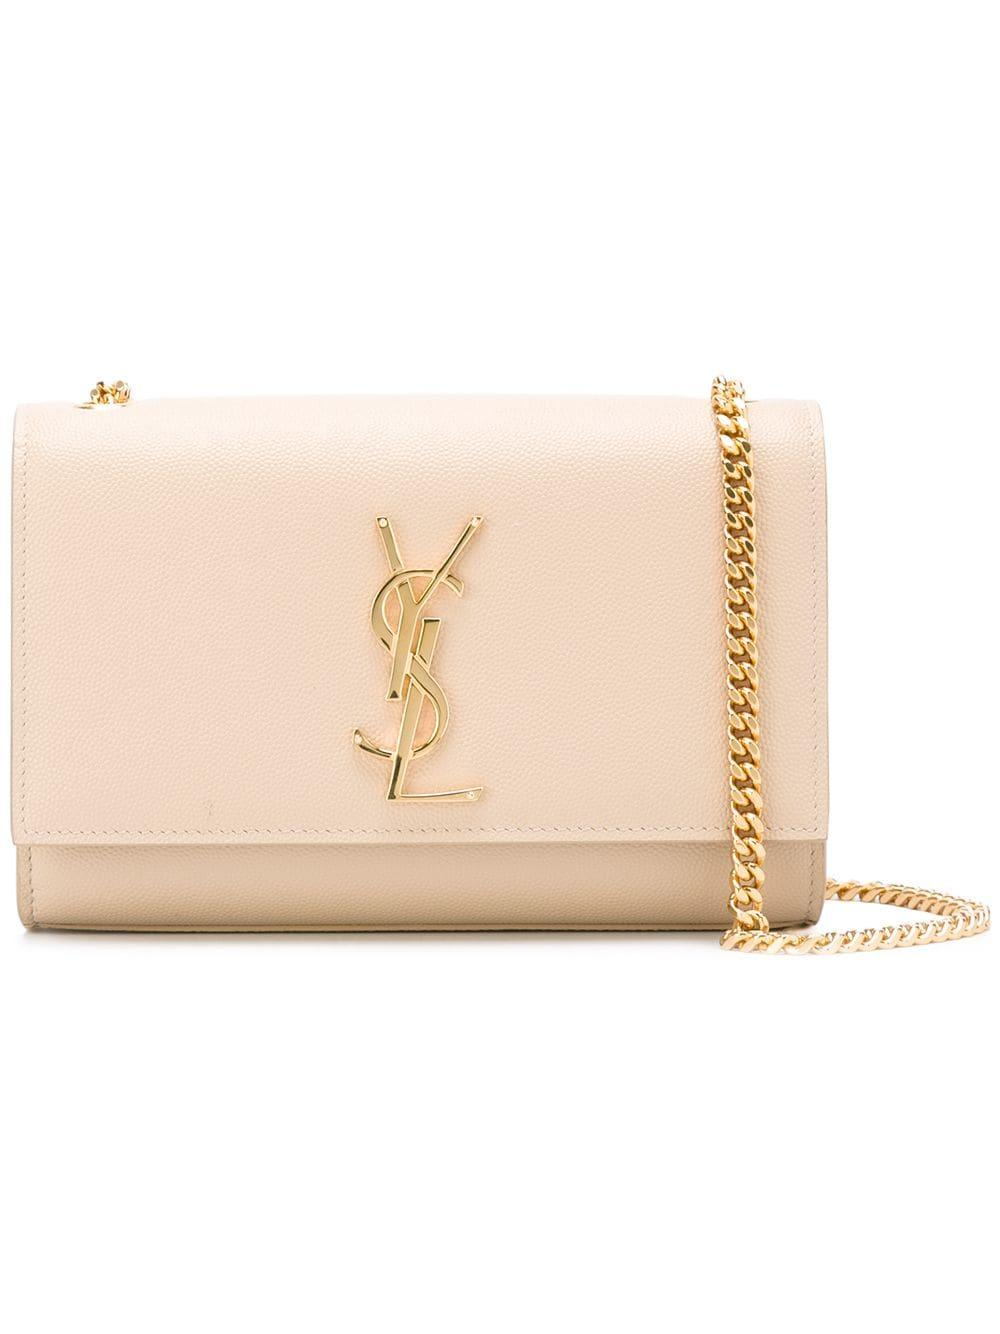 Small Kate Chain Bag Item # 469390BOW0J-R21